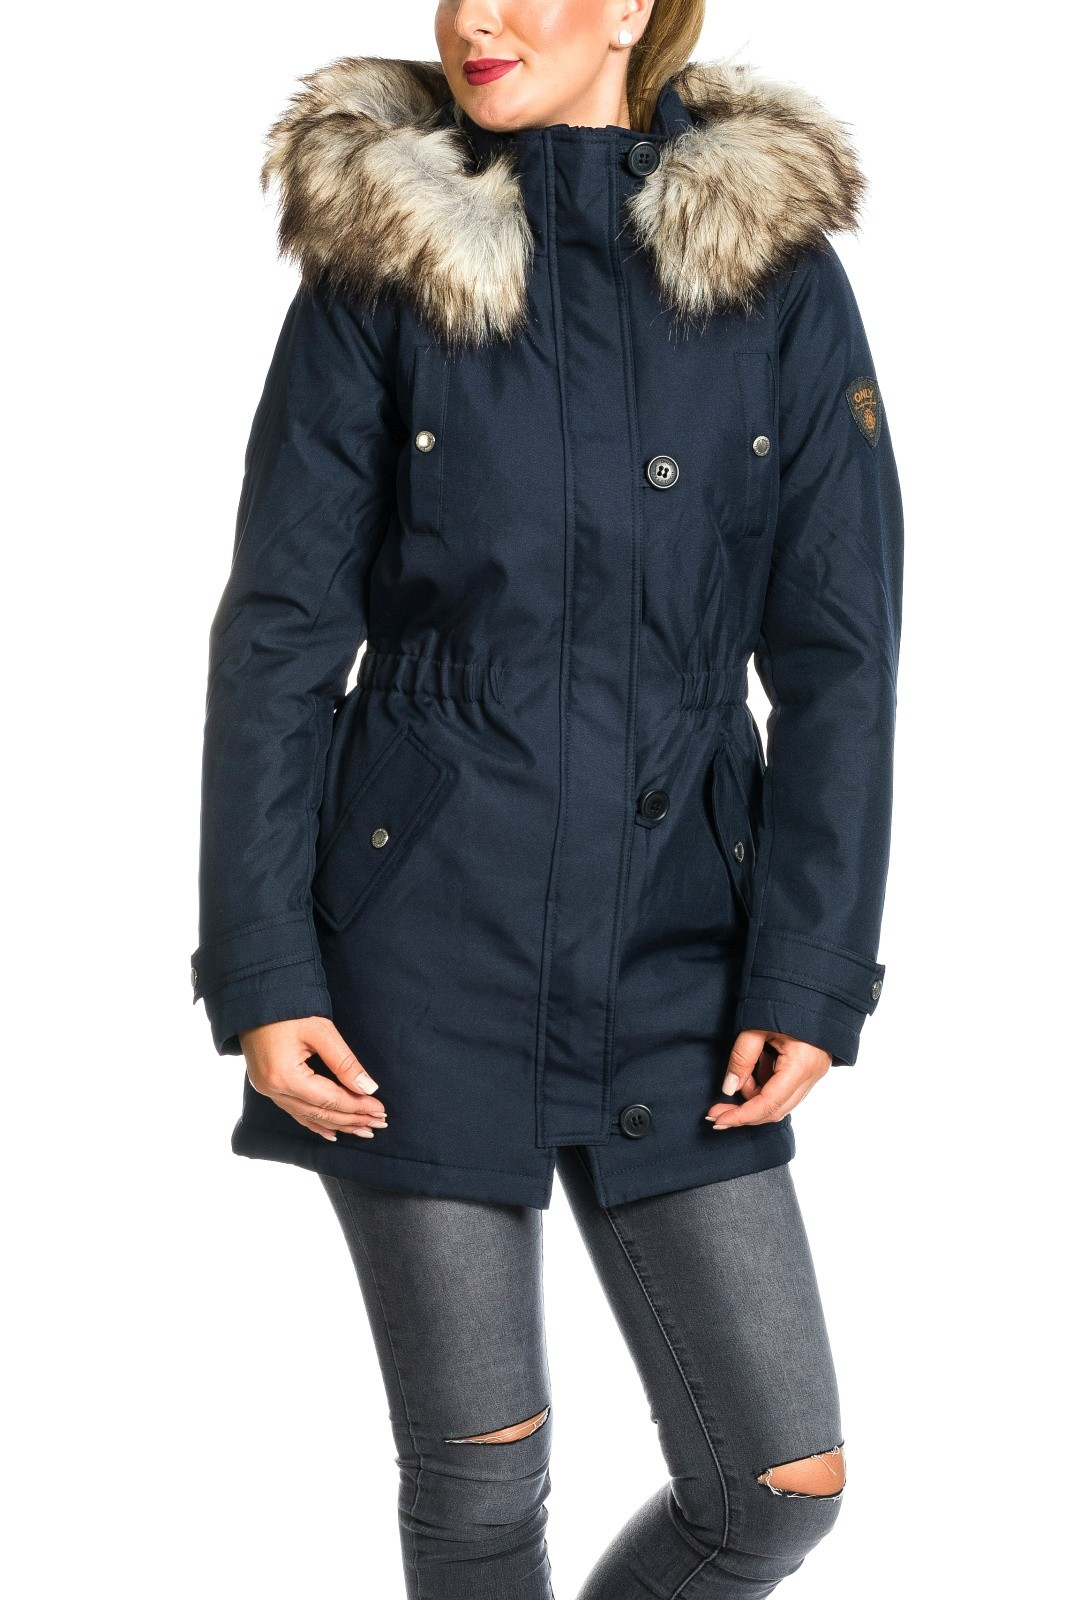 Winterjacke damen royal blau